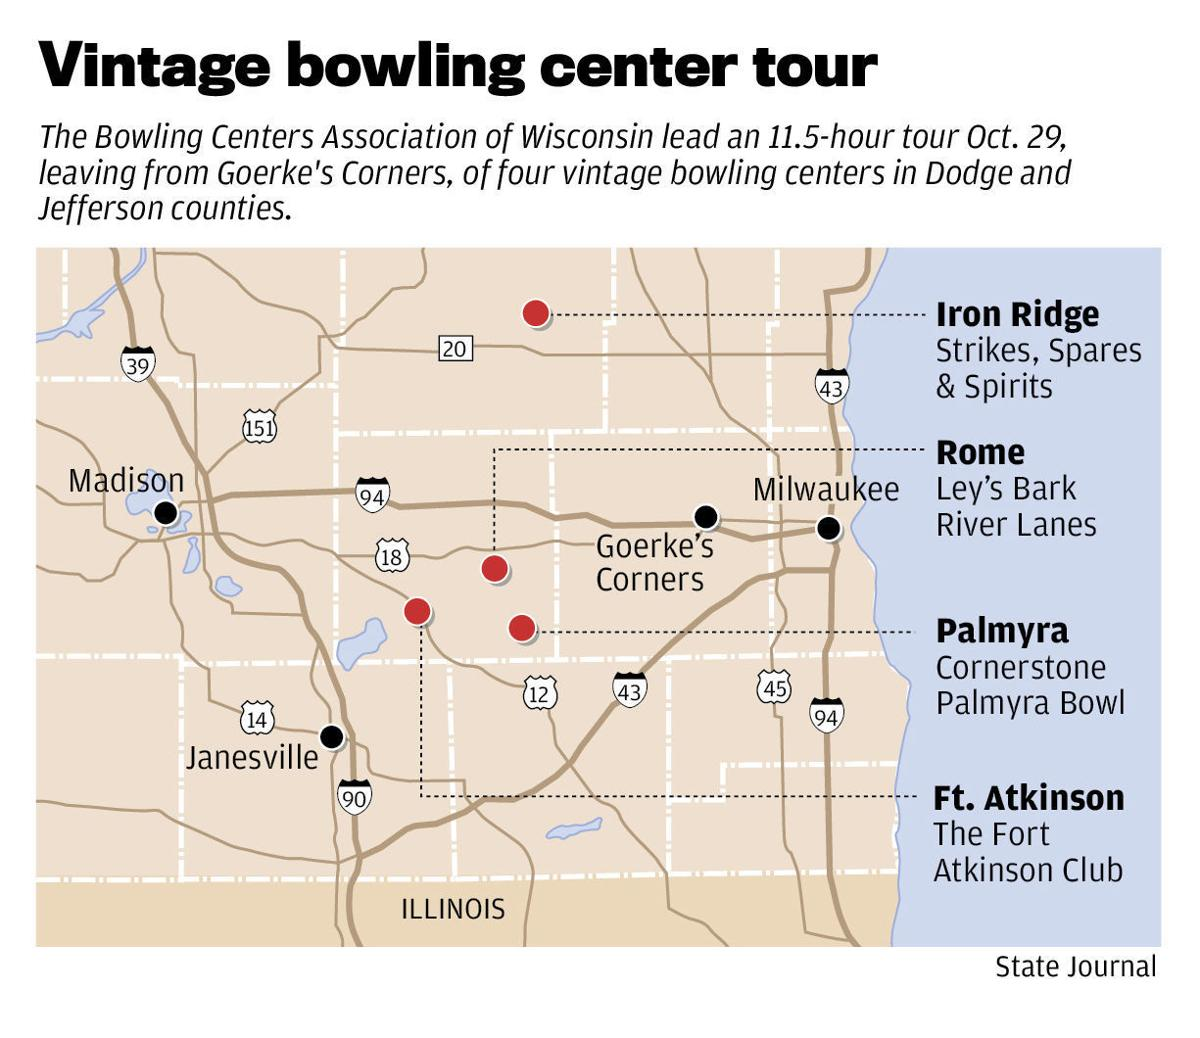 Vintage bowling center tour